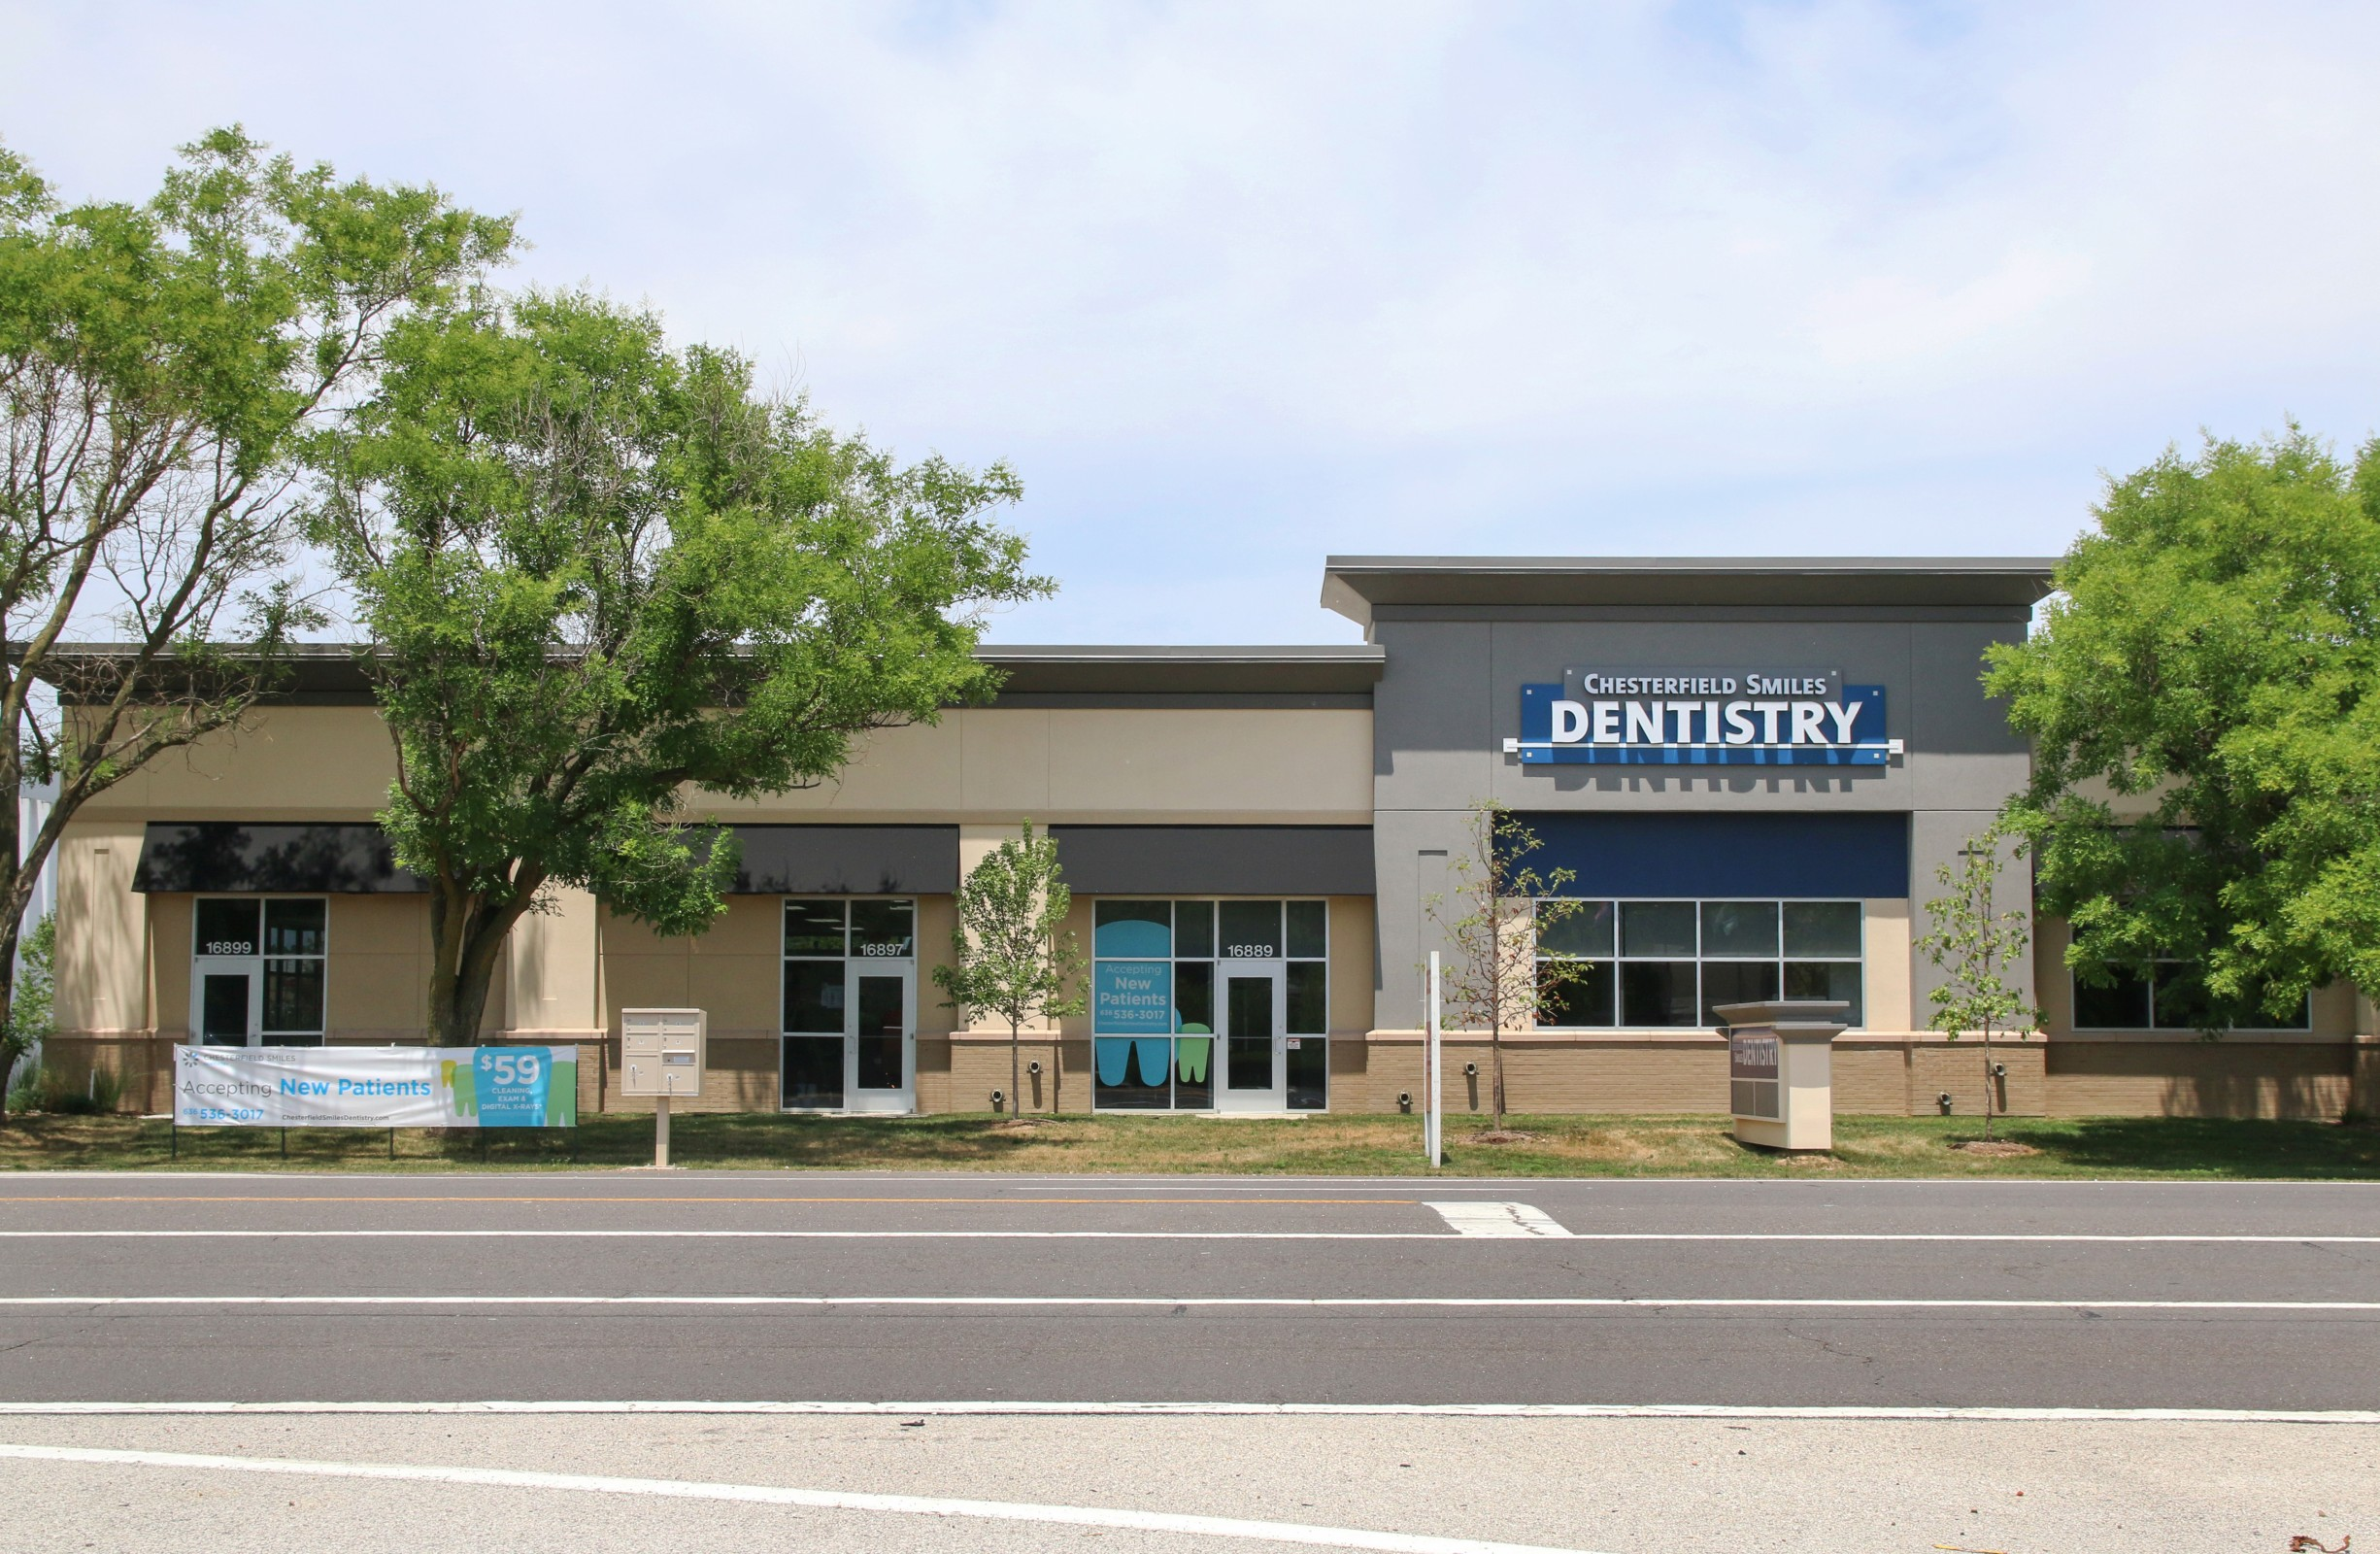 Chesterfield Smiles Dentistry image 10